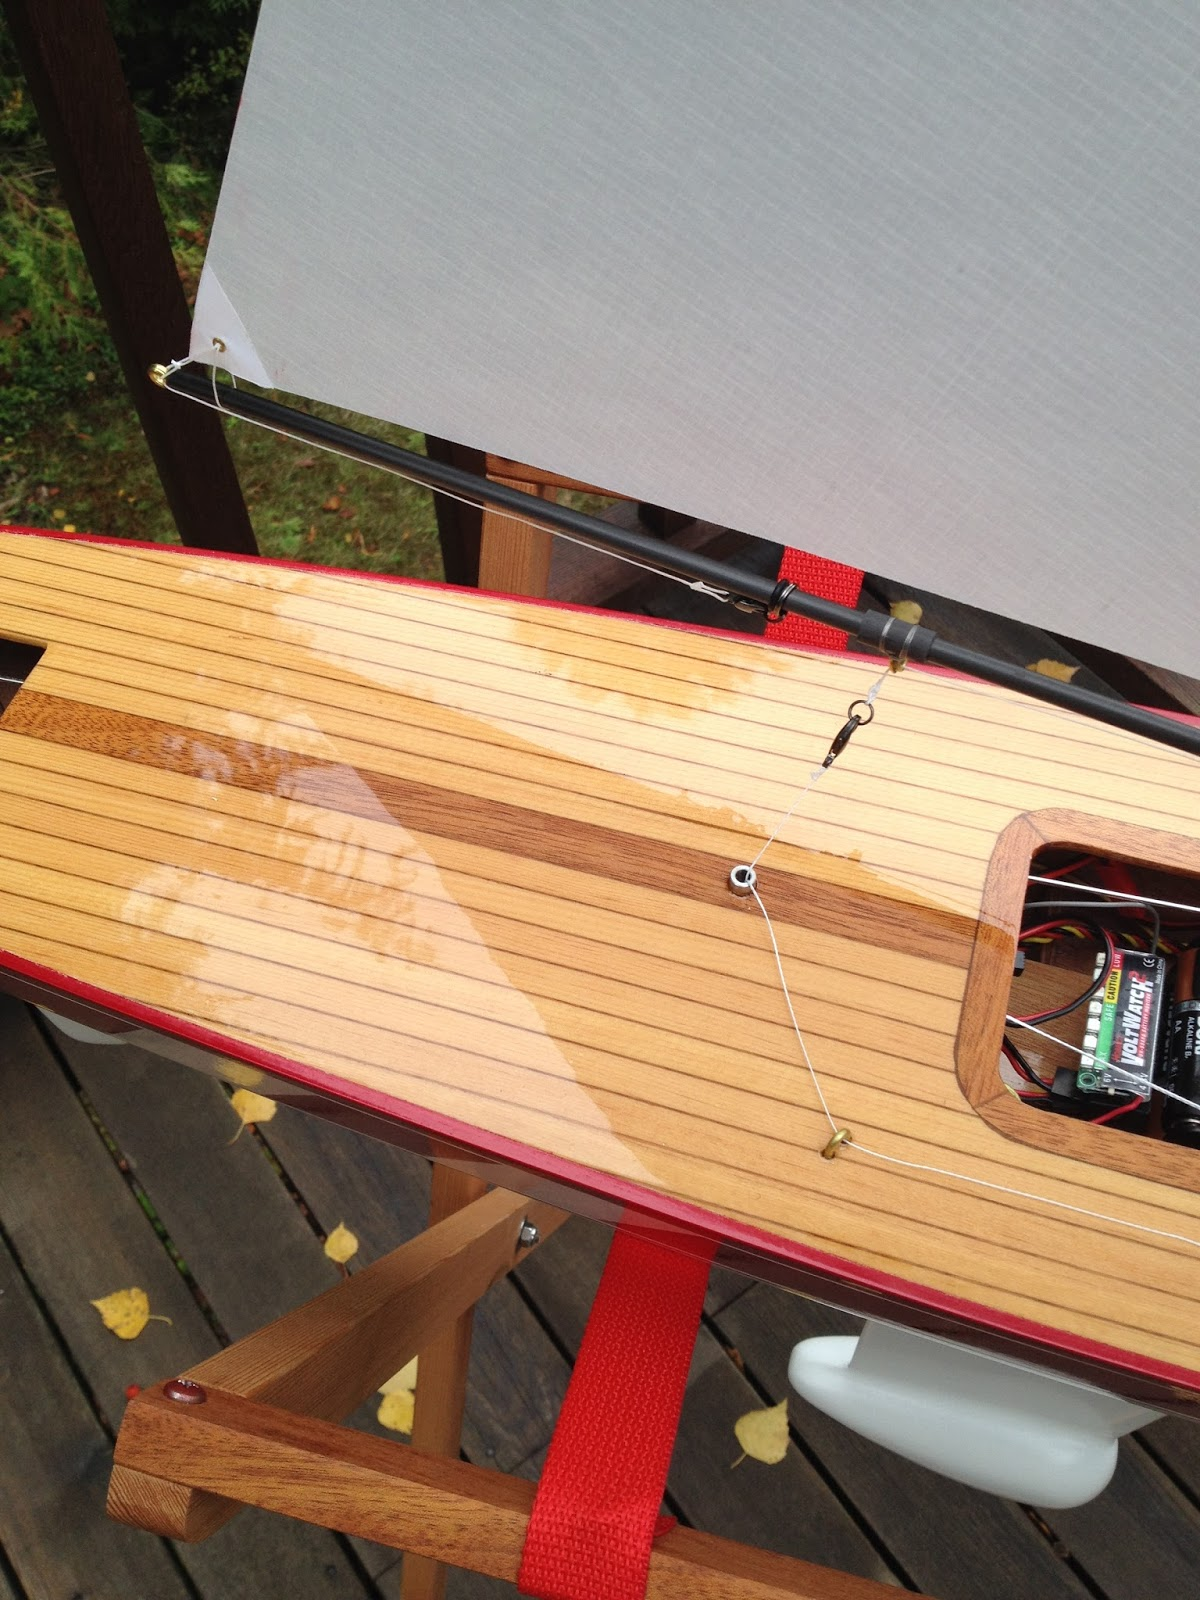 R/C Sailboat Builds